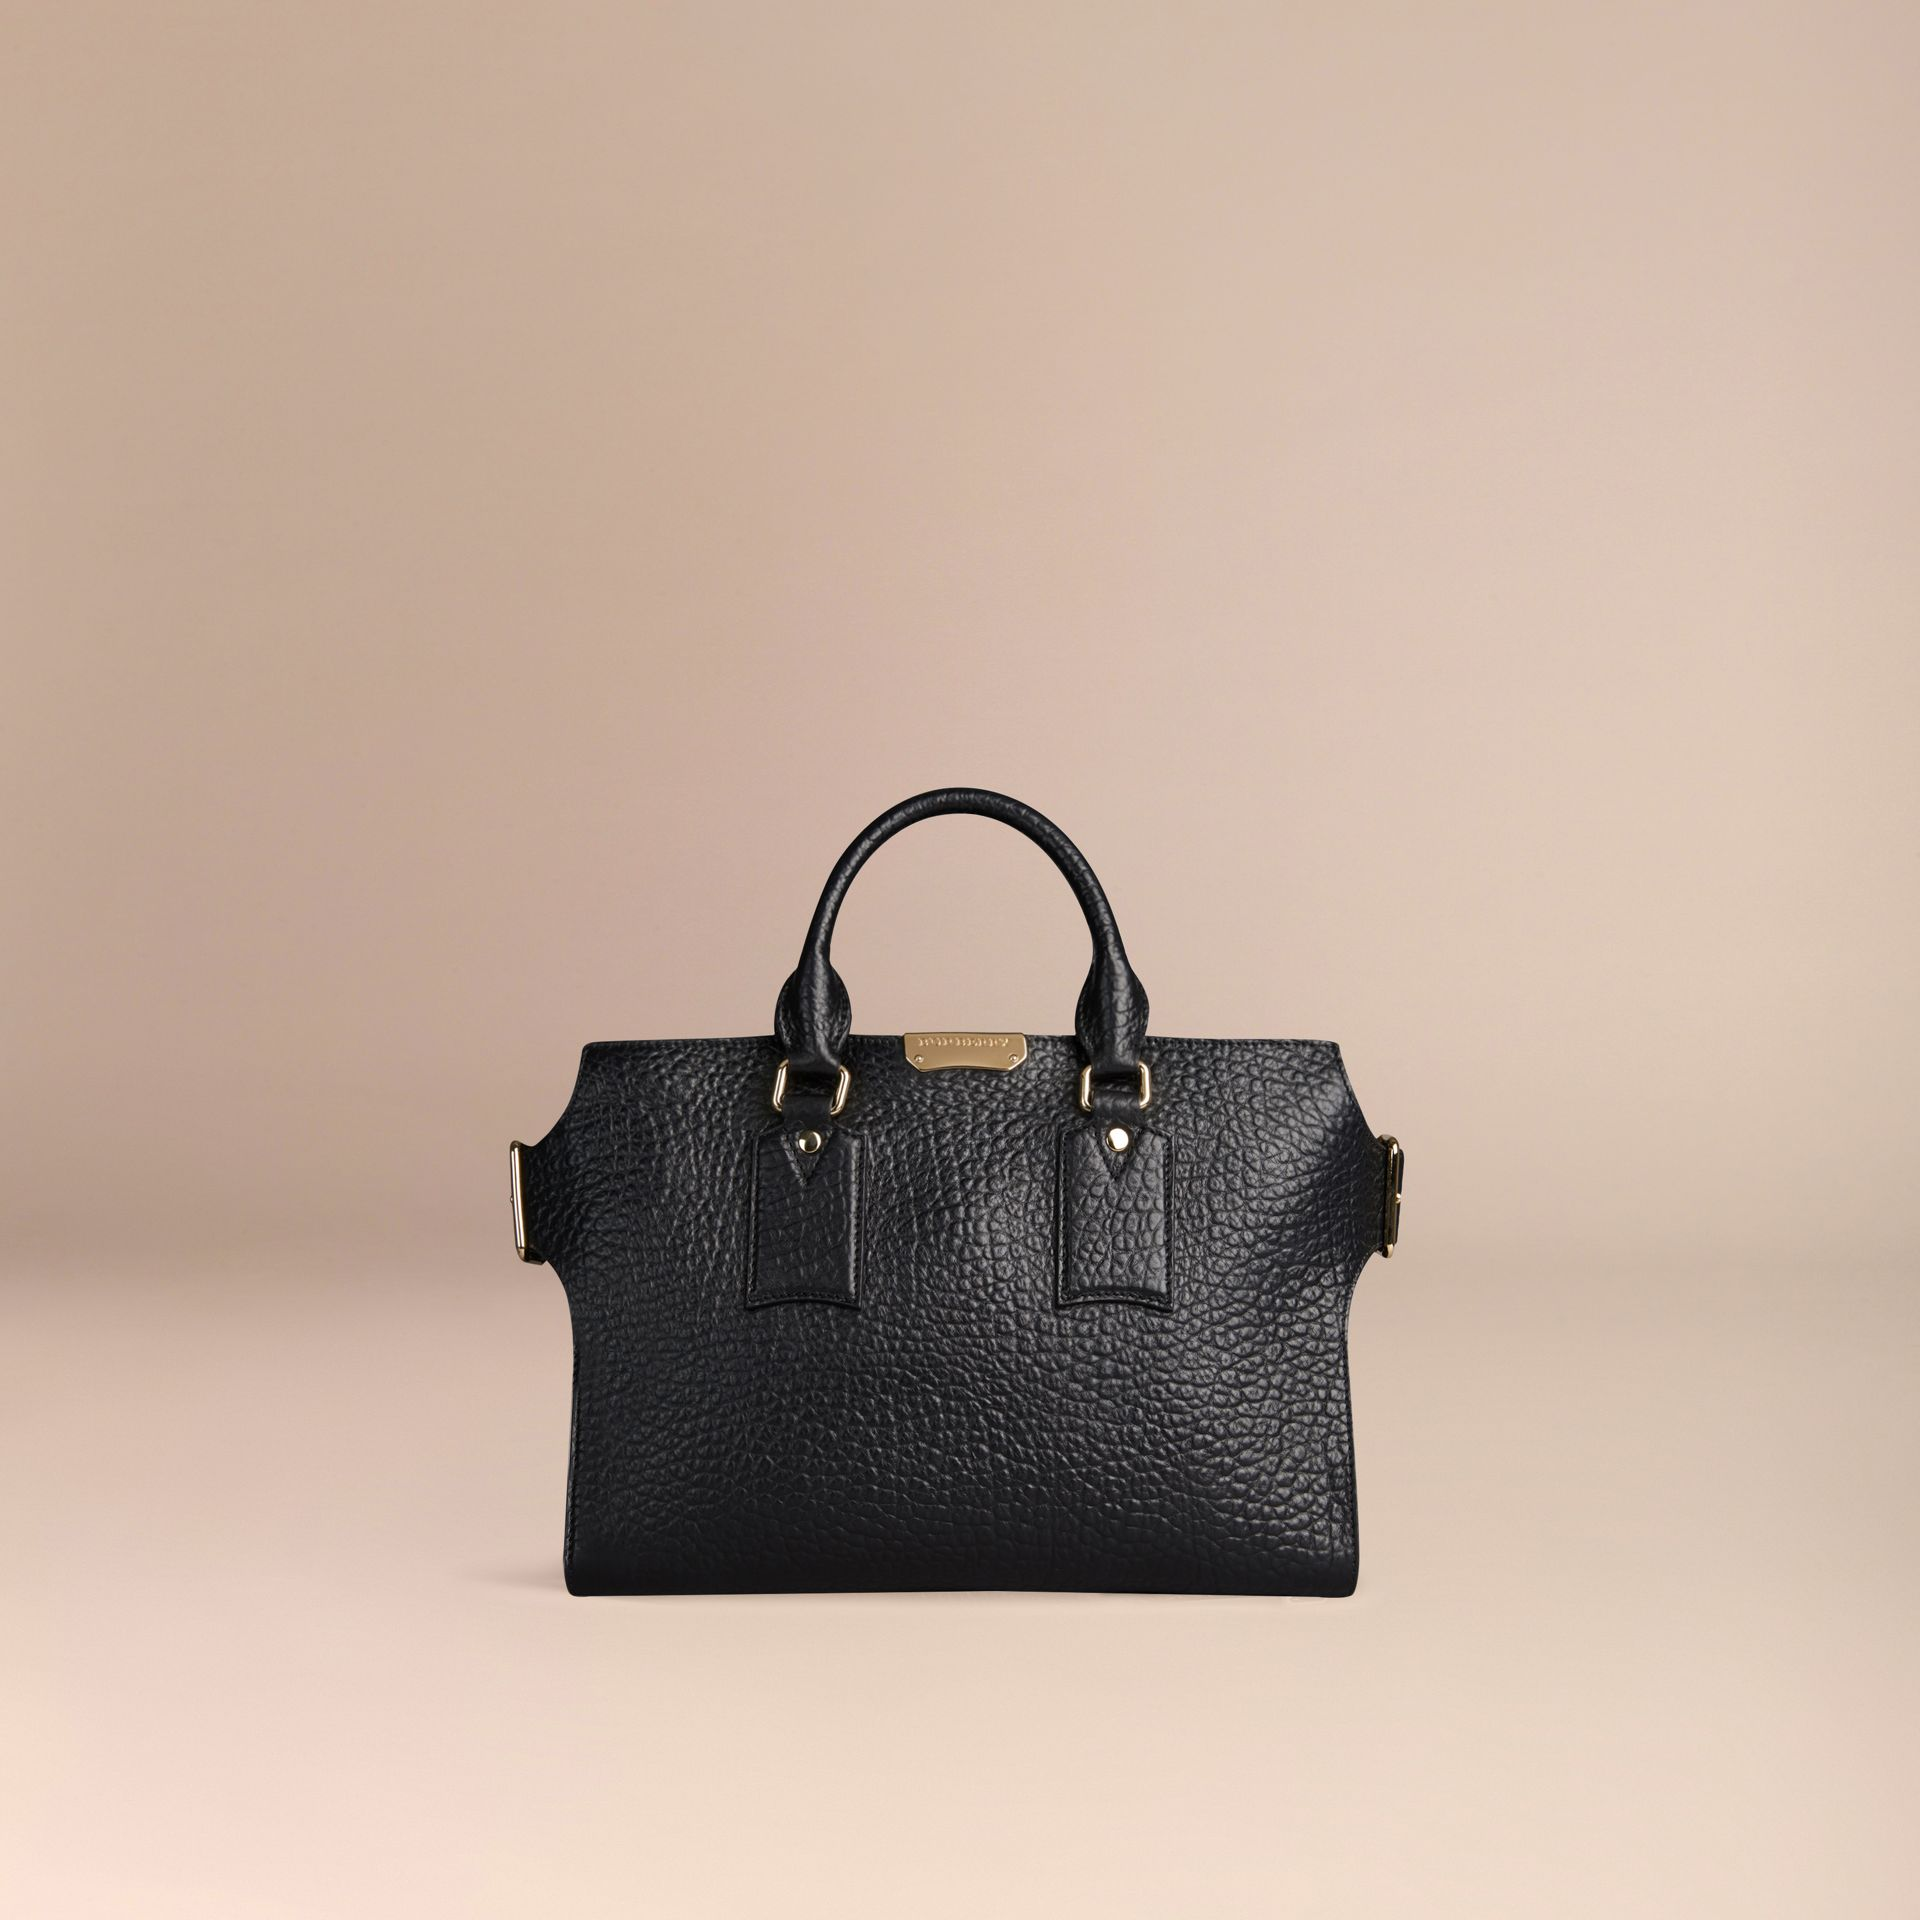 Noir Sac medium The Clifton en cuir grainé emblématique Noir - photo de la galerie 6